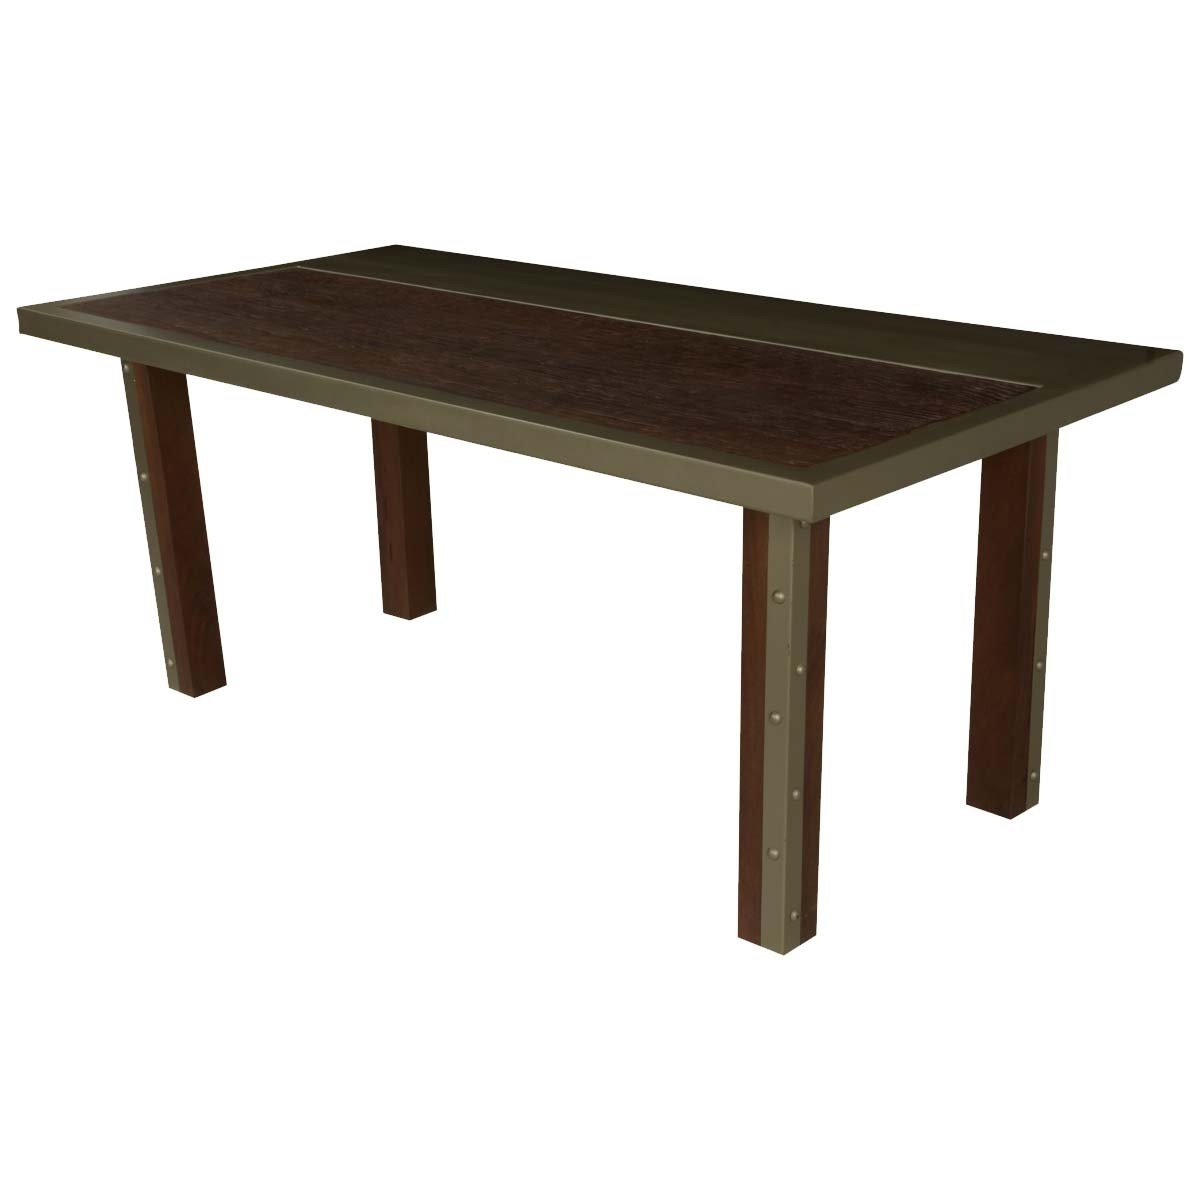 "Modern Industrial Mango Wood & Iron 71"" Dining Table Regarding Current Mango Wood/iron Dining Tables (Photo 6 of 20)"